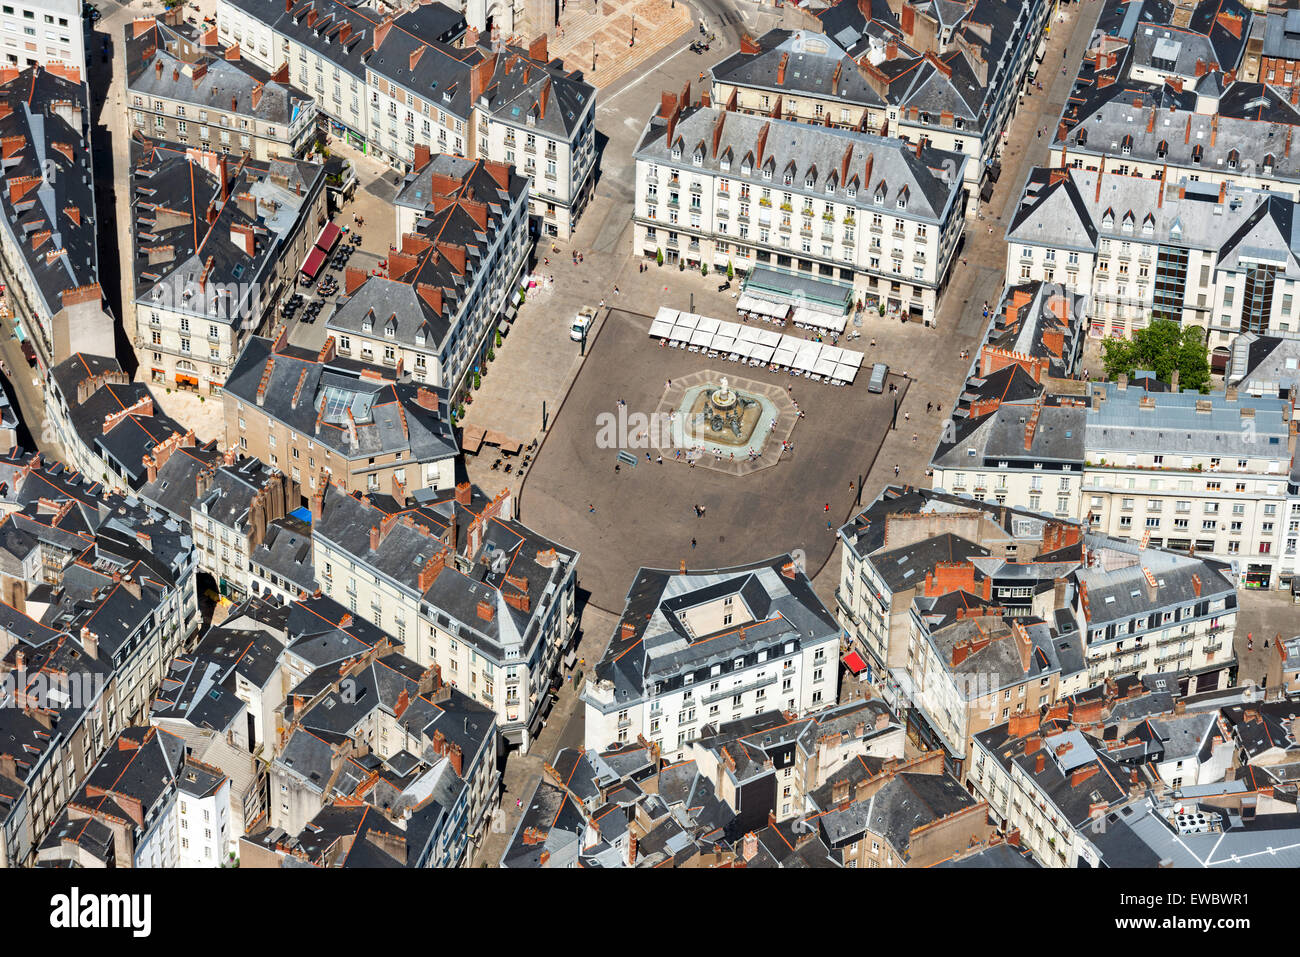 Square Habitat Nantes Nantes North Western France Aerial View Of The Square